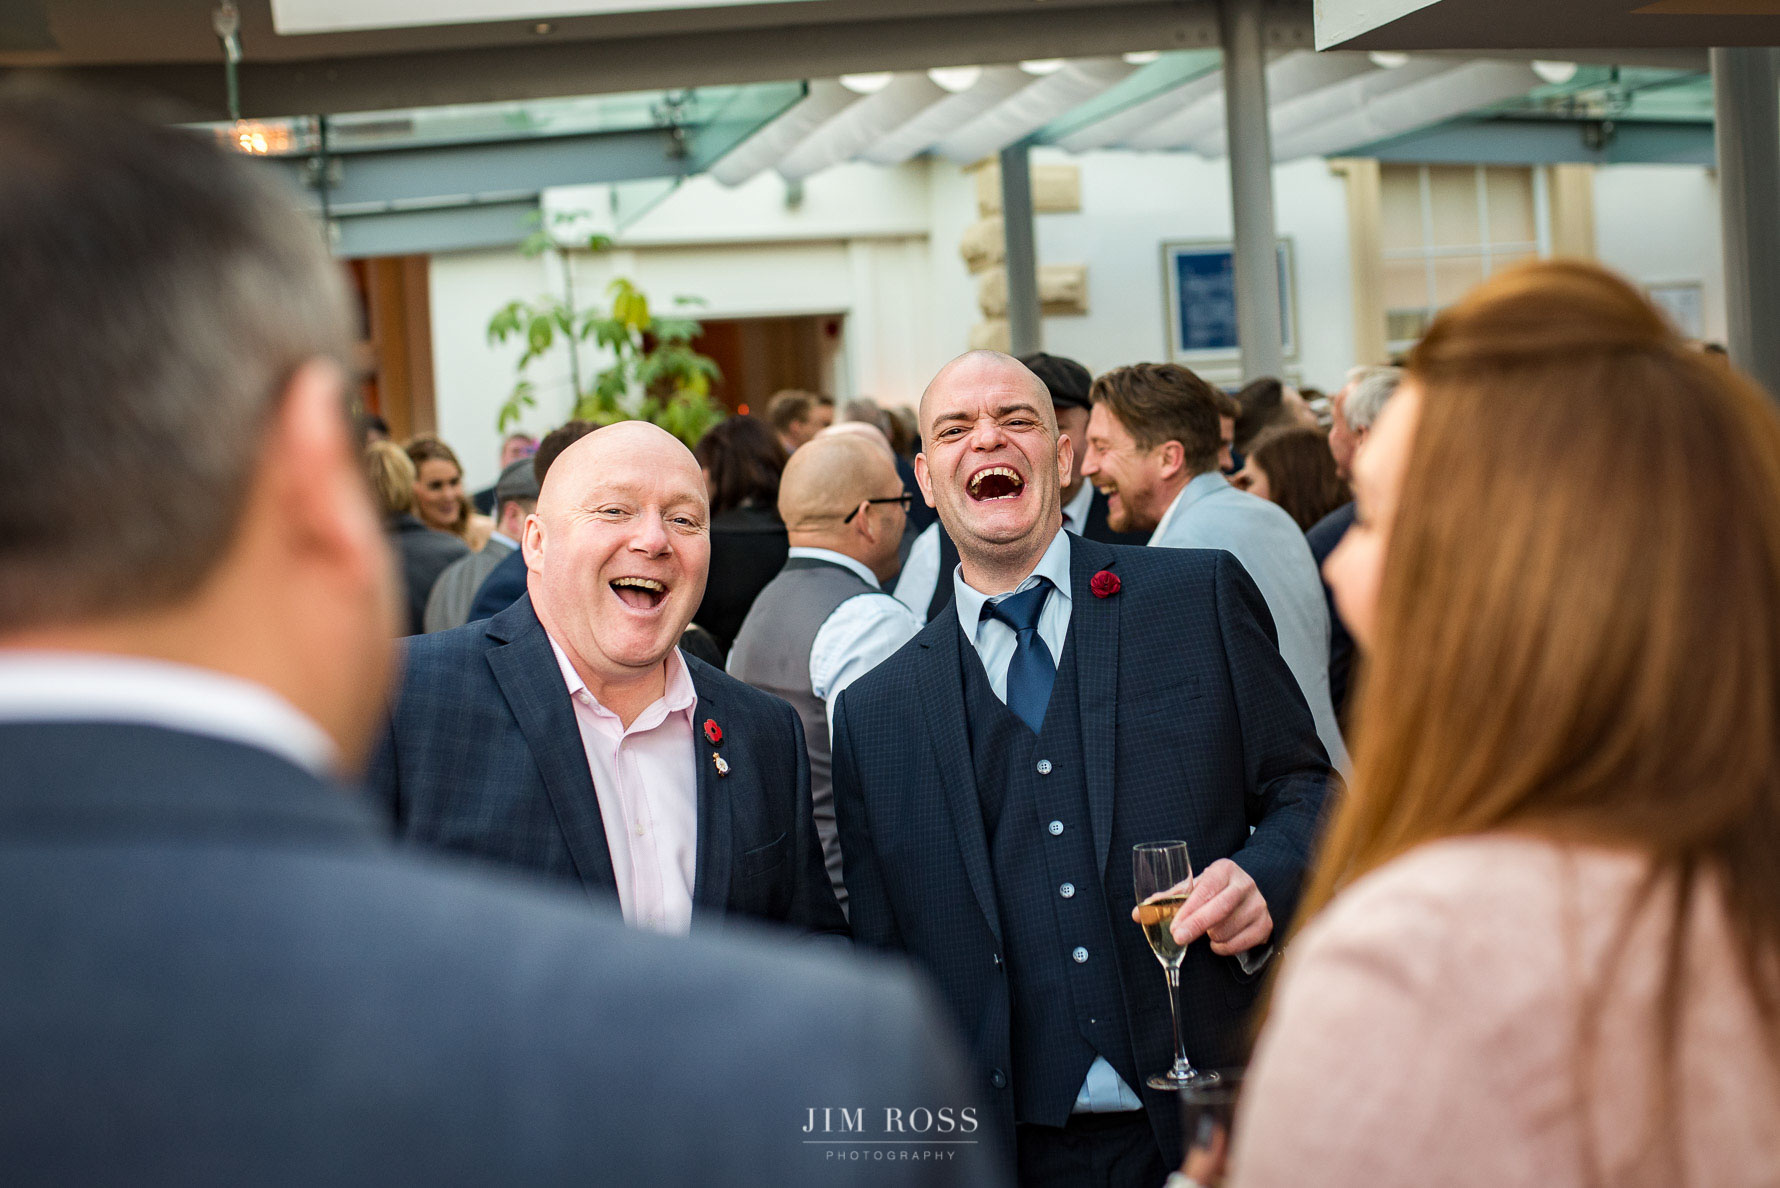 Guests enjoying canapes and laughter